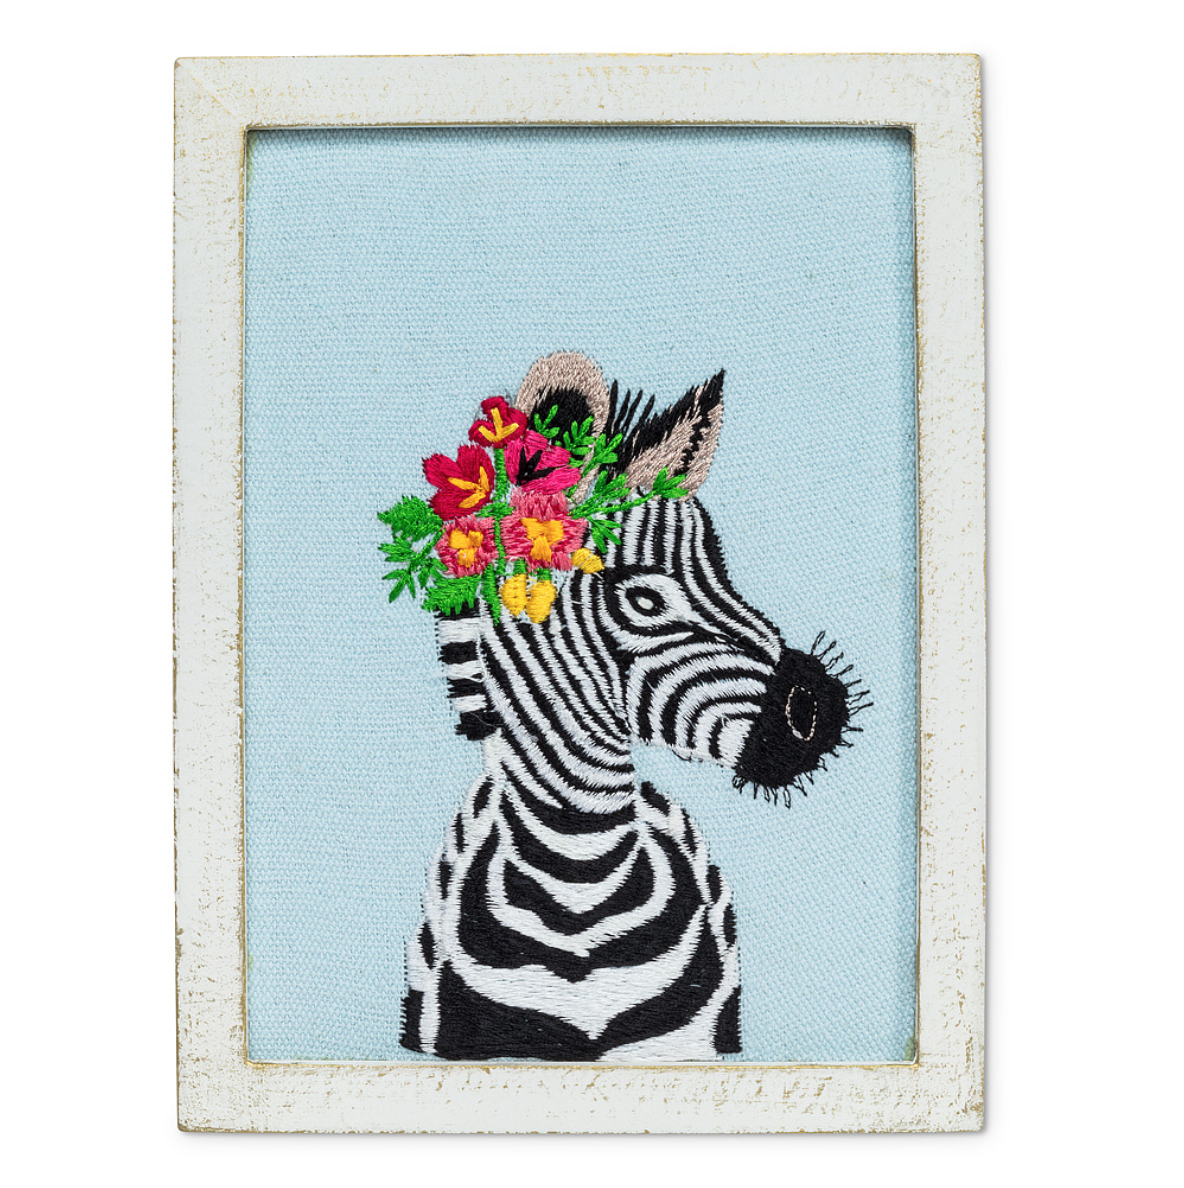 Zebra with Flowers Embroidered Wall Art